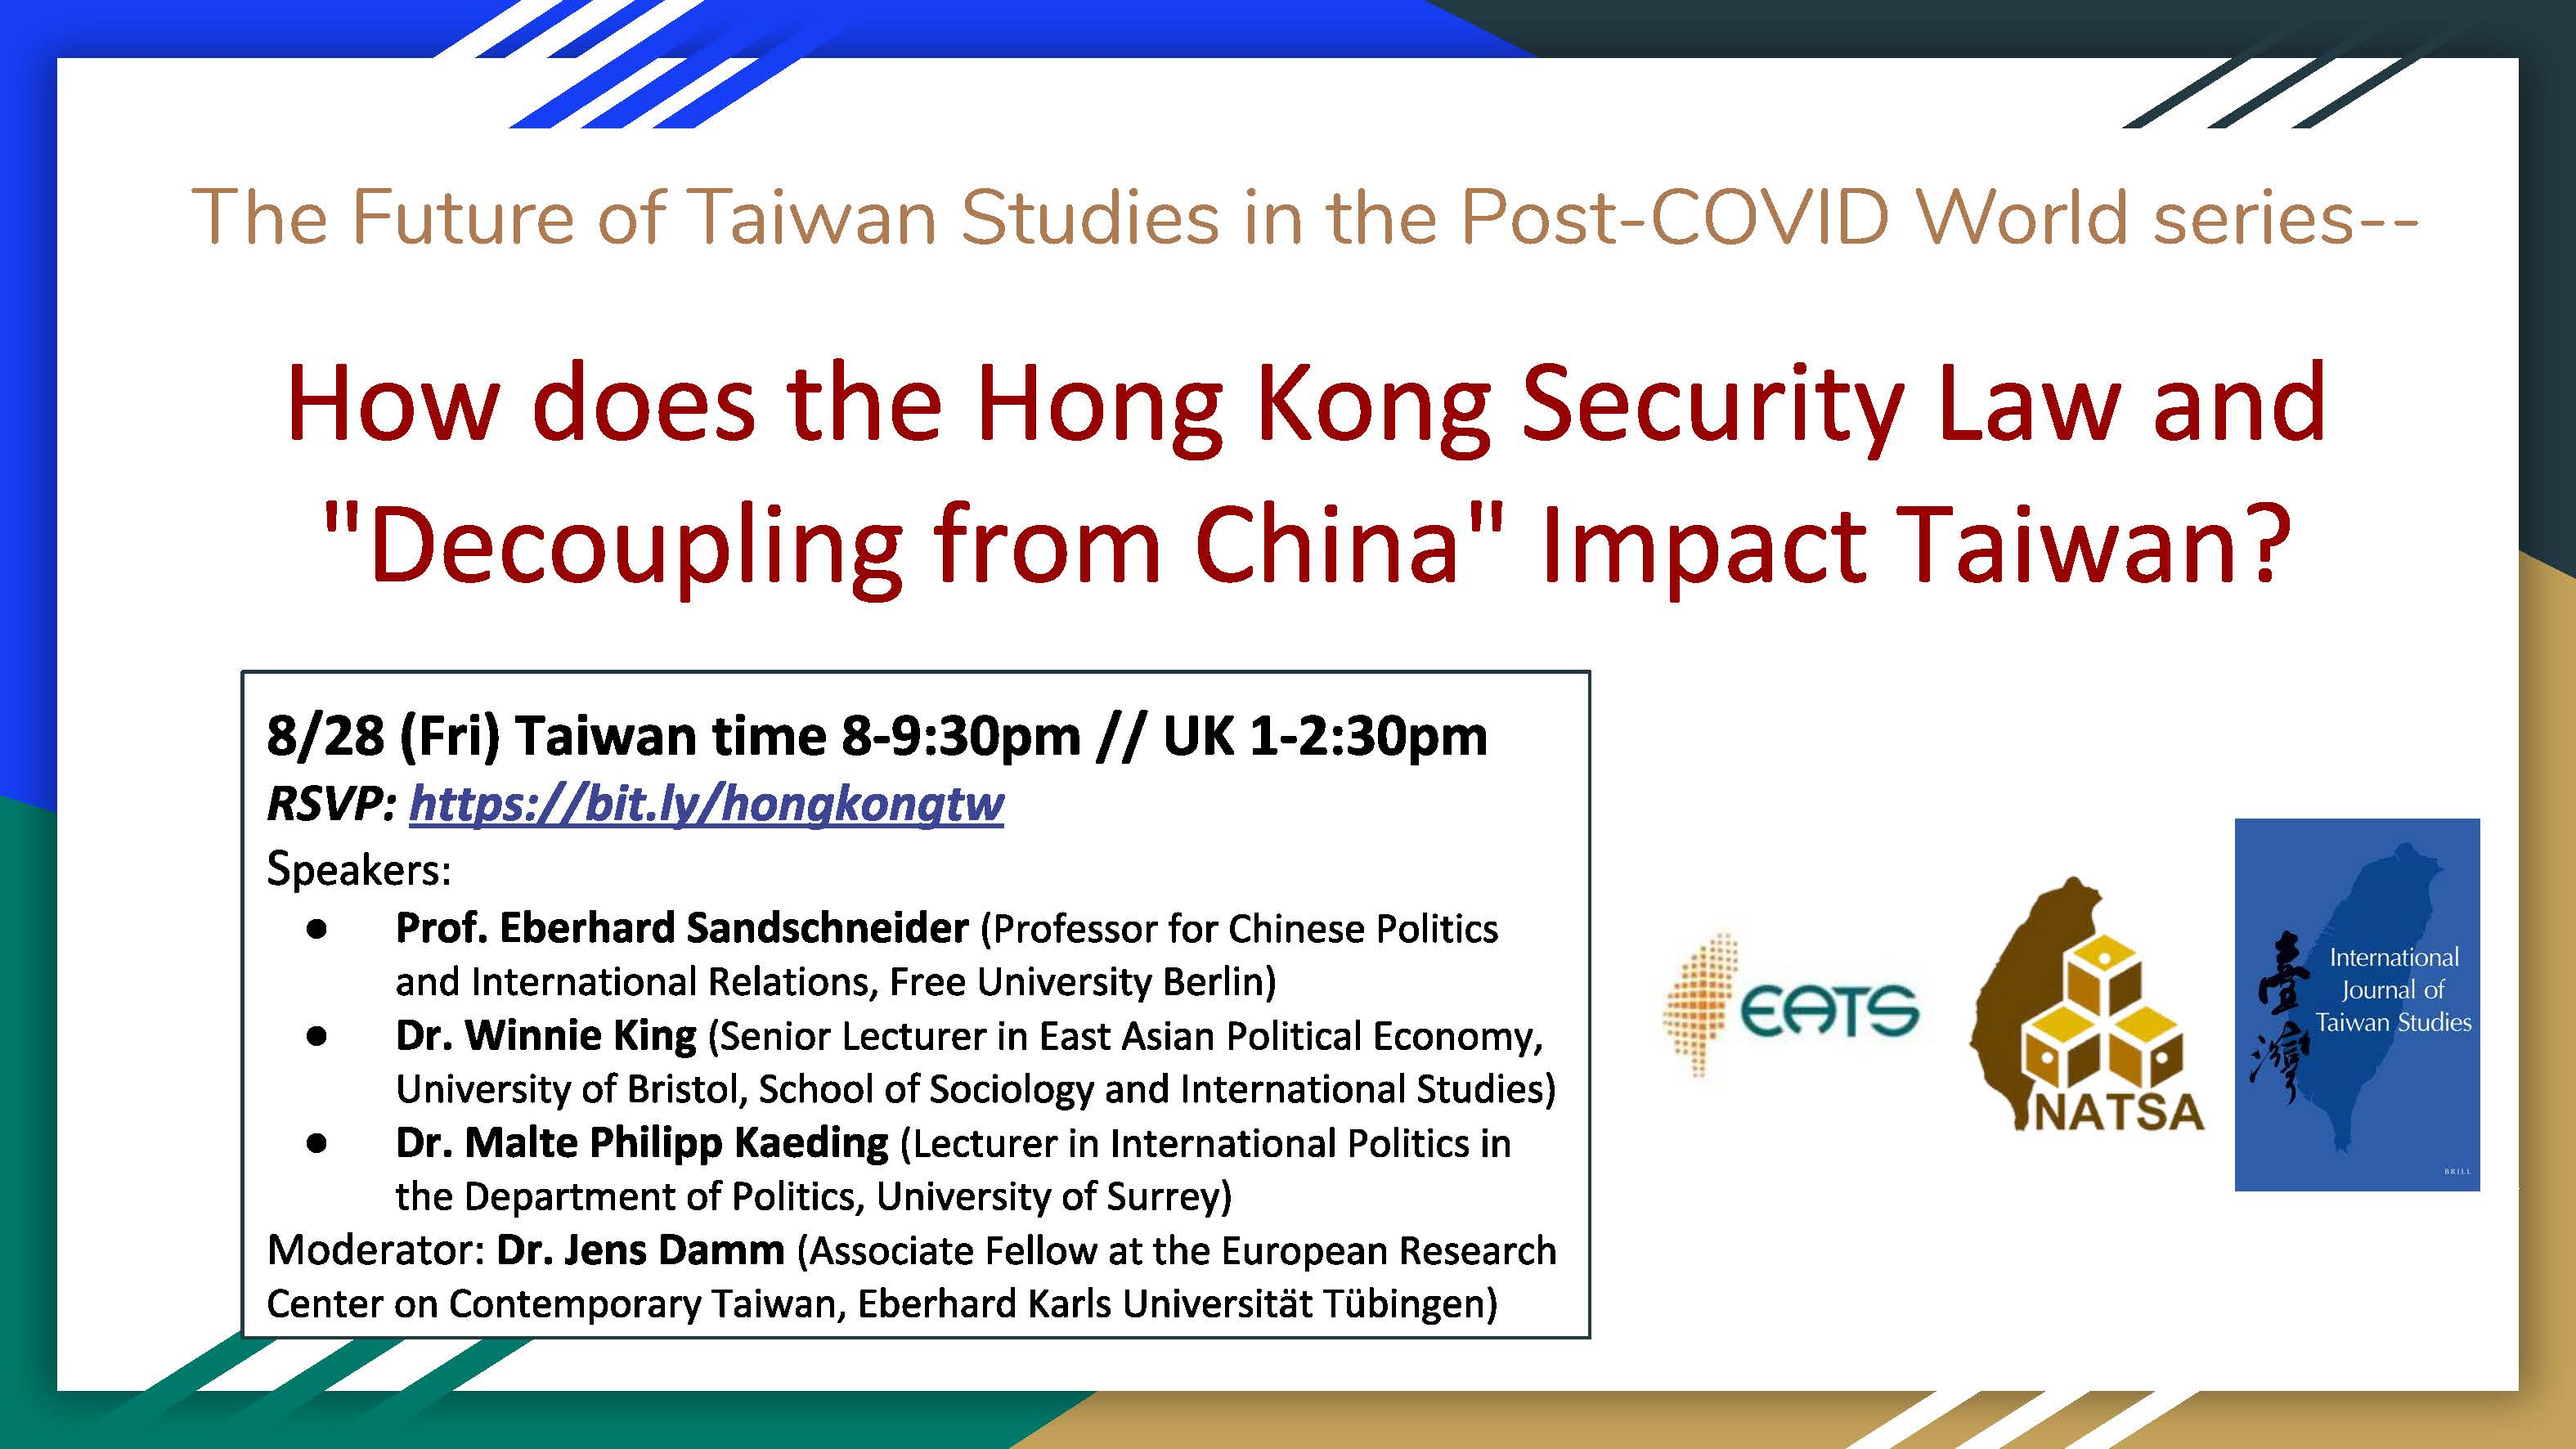 Taiwan Studies webinar: How does HK security law and ‵decoupling from China‵ impact Taiwan?